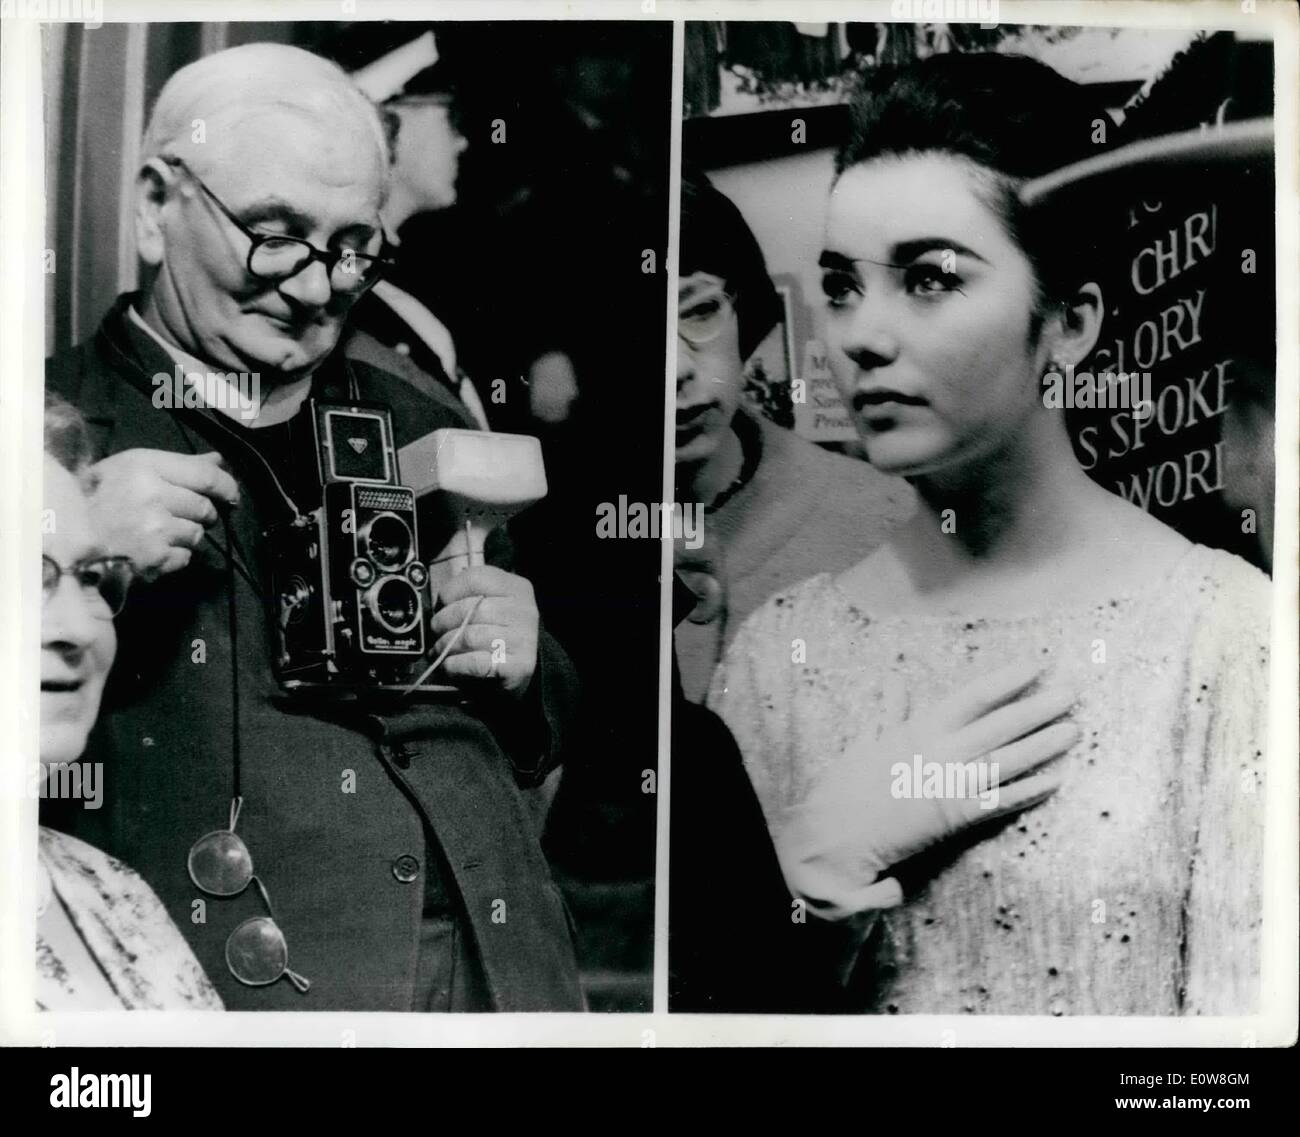 Nov. 16, 1961 - 16-11-61 Premiere of the King of Kings held in London last night. Reverend snaps Salome . The premiere of the film King of Kings was held last night at the Coliseum in London. Photo Shows: right. the Rev. David Sykes, who was taking pictures at the premiere last night on behalf of the London Diocesan Classical Registry and left, a tempting subject for the reverend's camera, star Brijid Bazlen who plays Salome in the film. - Stock Image